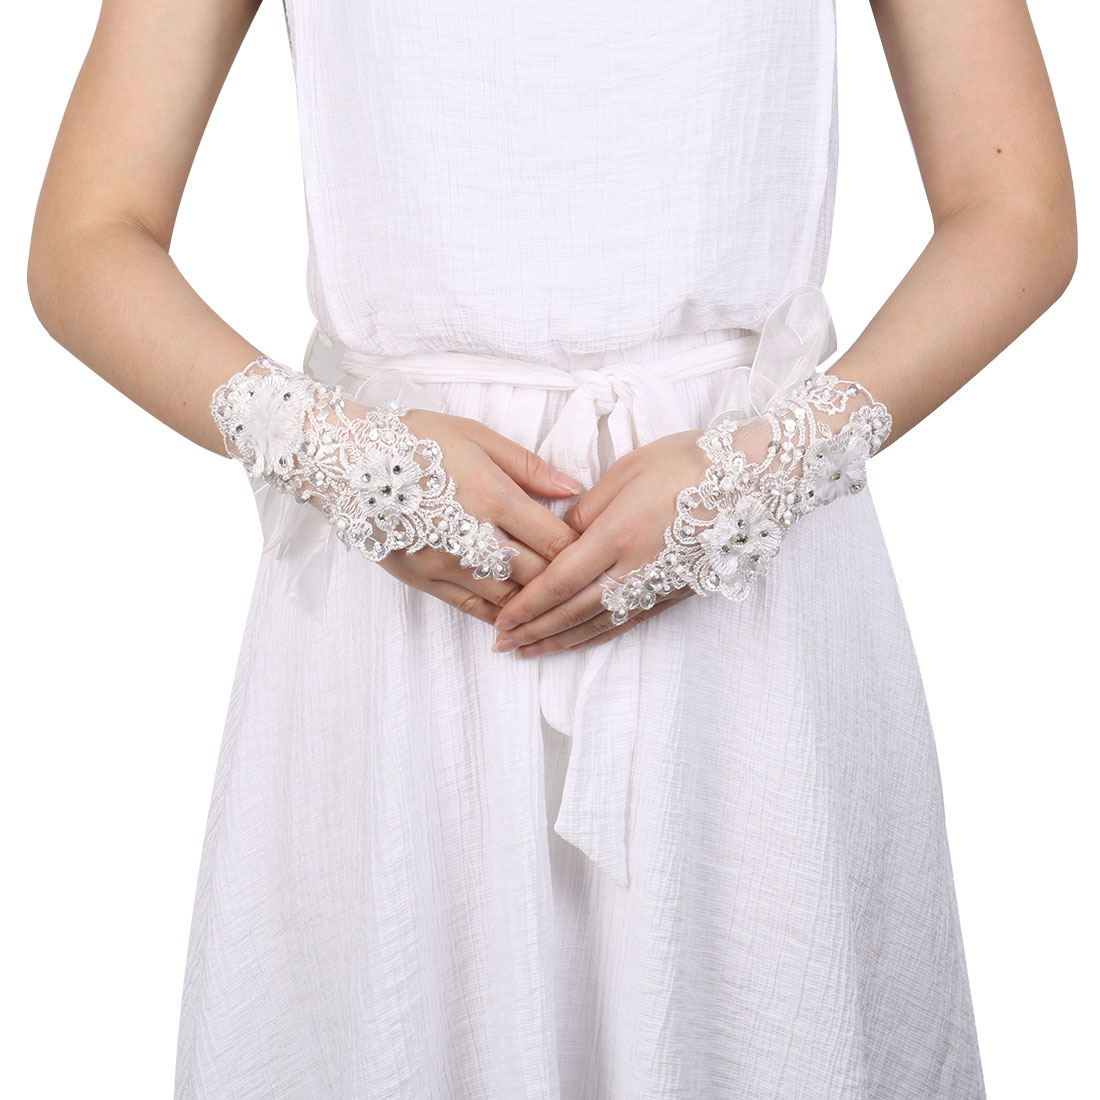 Lady DIY Craft Embroidery Decor Bridesmaid Hand Lace Fingerless Glove White Pair